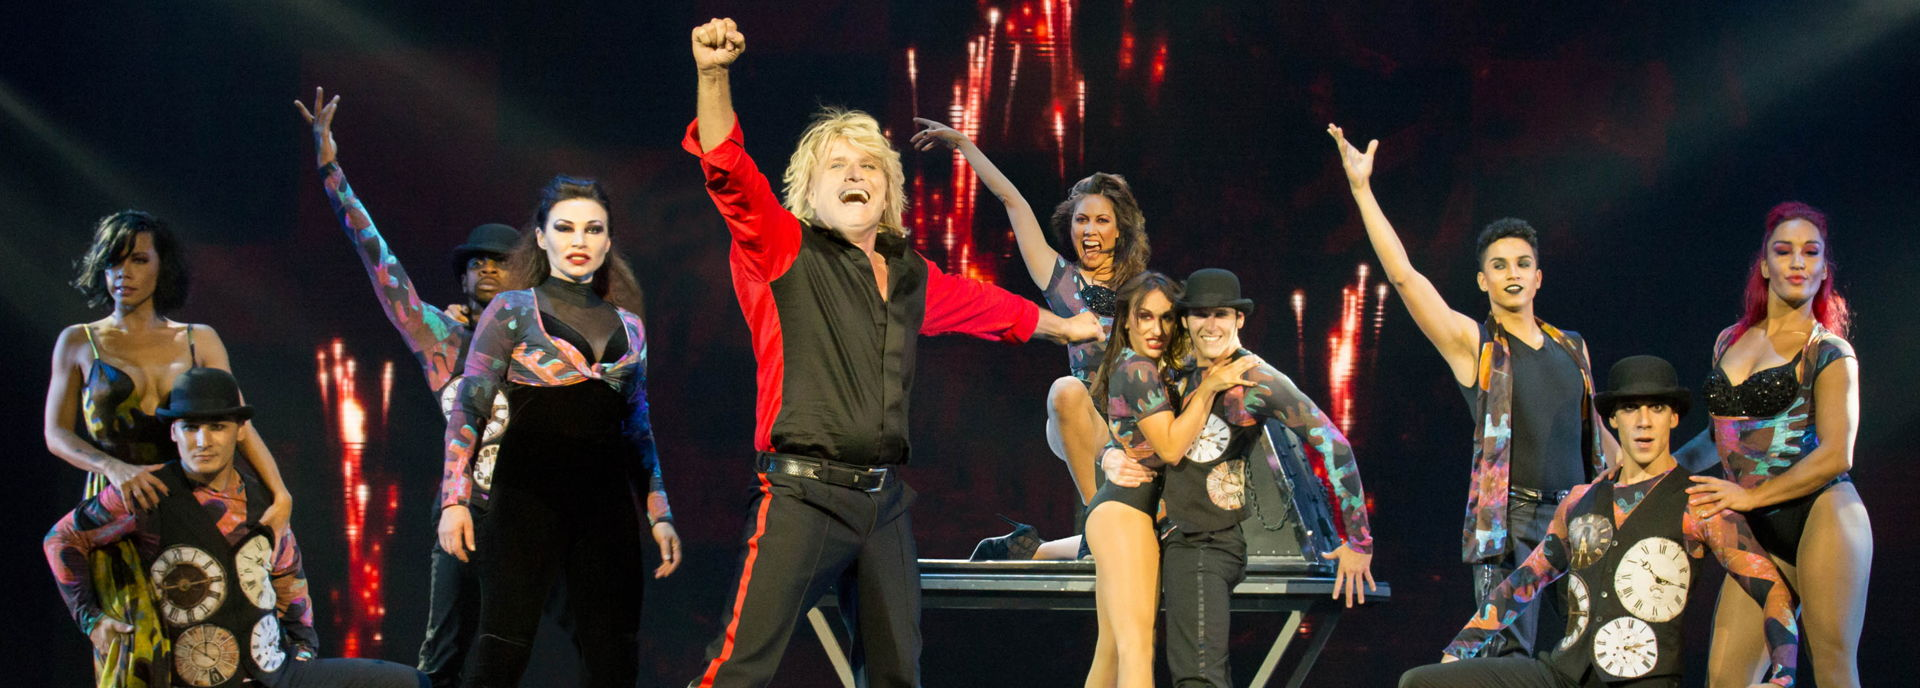 Op 14 en 15 december 2017 veranderde De Tamboer in Hans Klok's House of Horror.